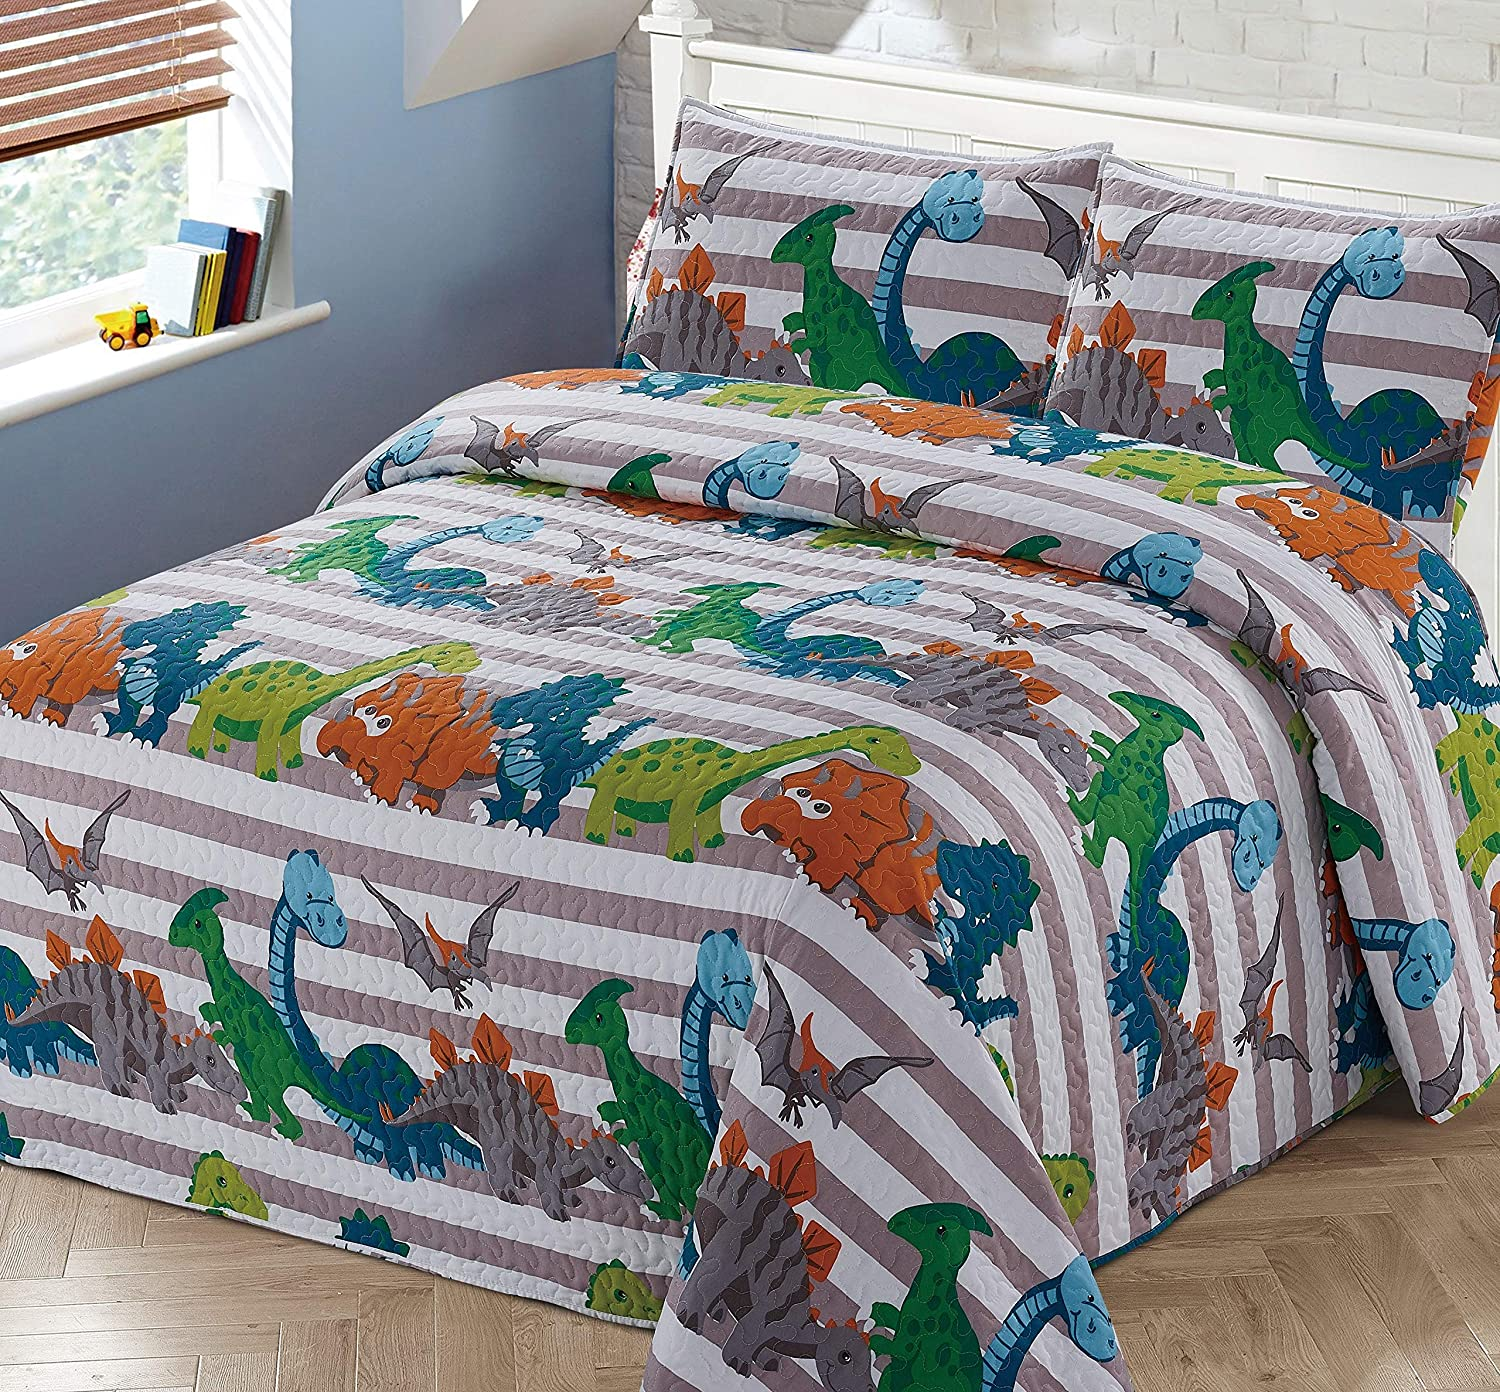 2pc Twin Bedspread Coverlet Quilt Set Kids//Teens Childrens Multi-Color Dinosaurs Stripe Quilt Grey Orange White Green Blue All Dinosaurs New